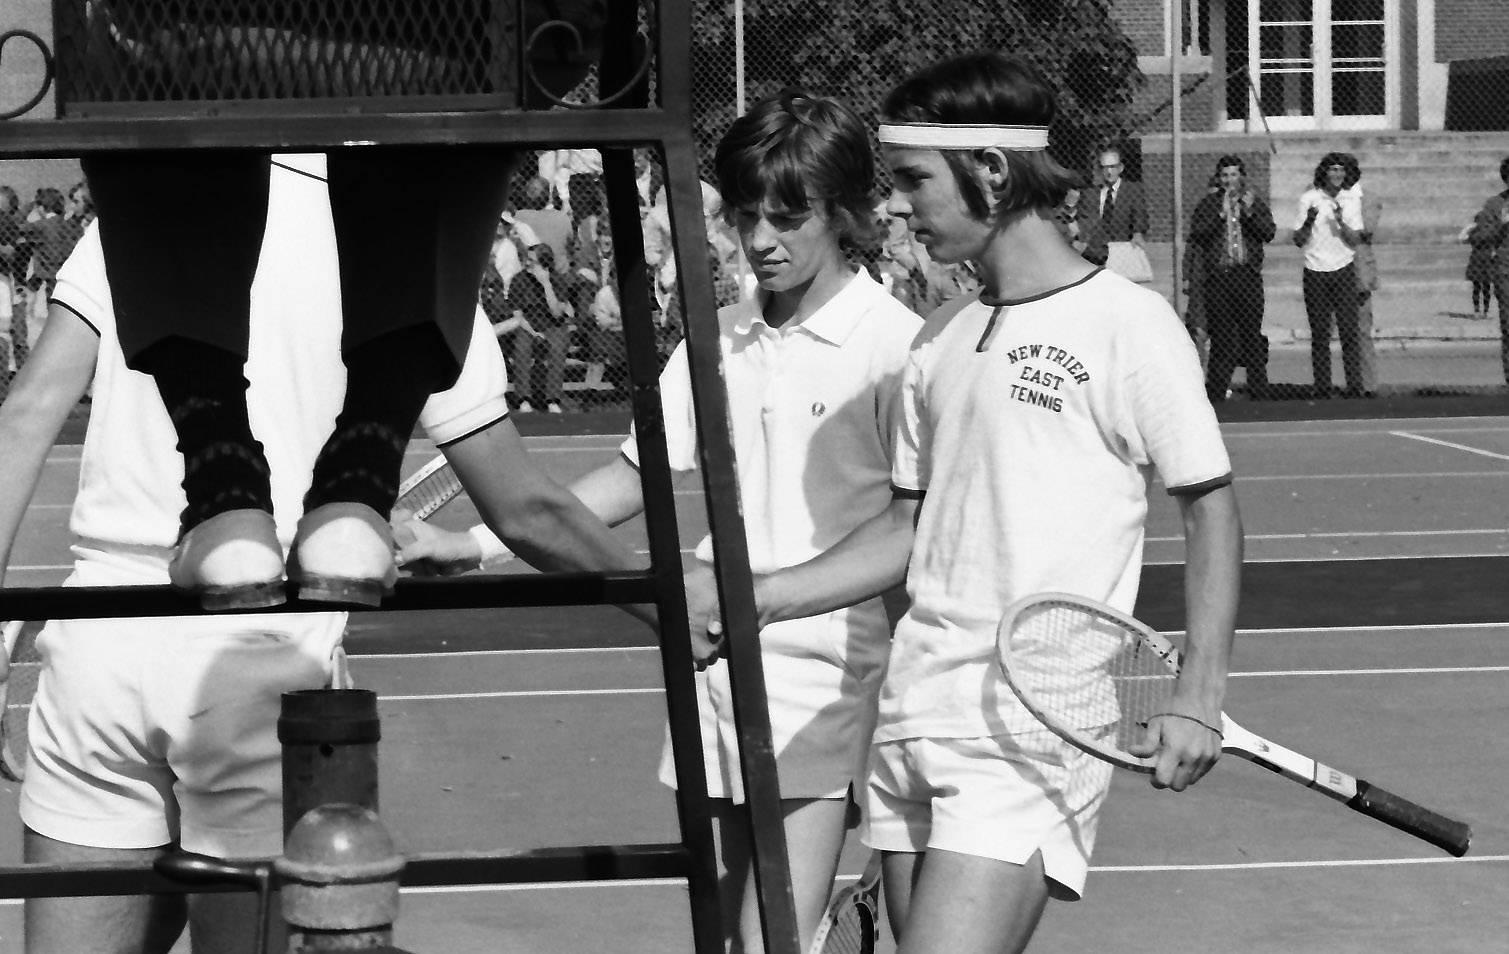 New Trier East doubles tennis team shakes hands with their opponents as the high school state tennis tournament at Arlington High School in May of 1972.